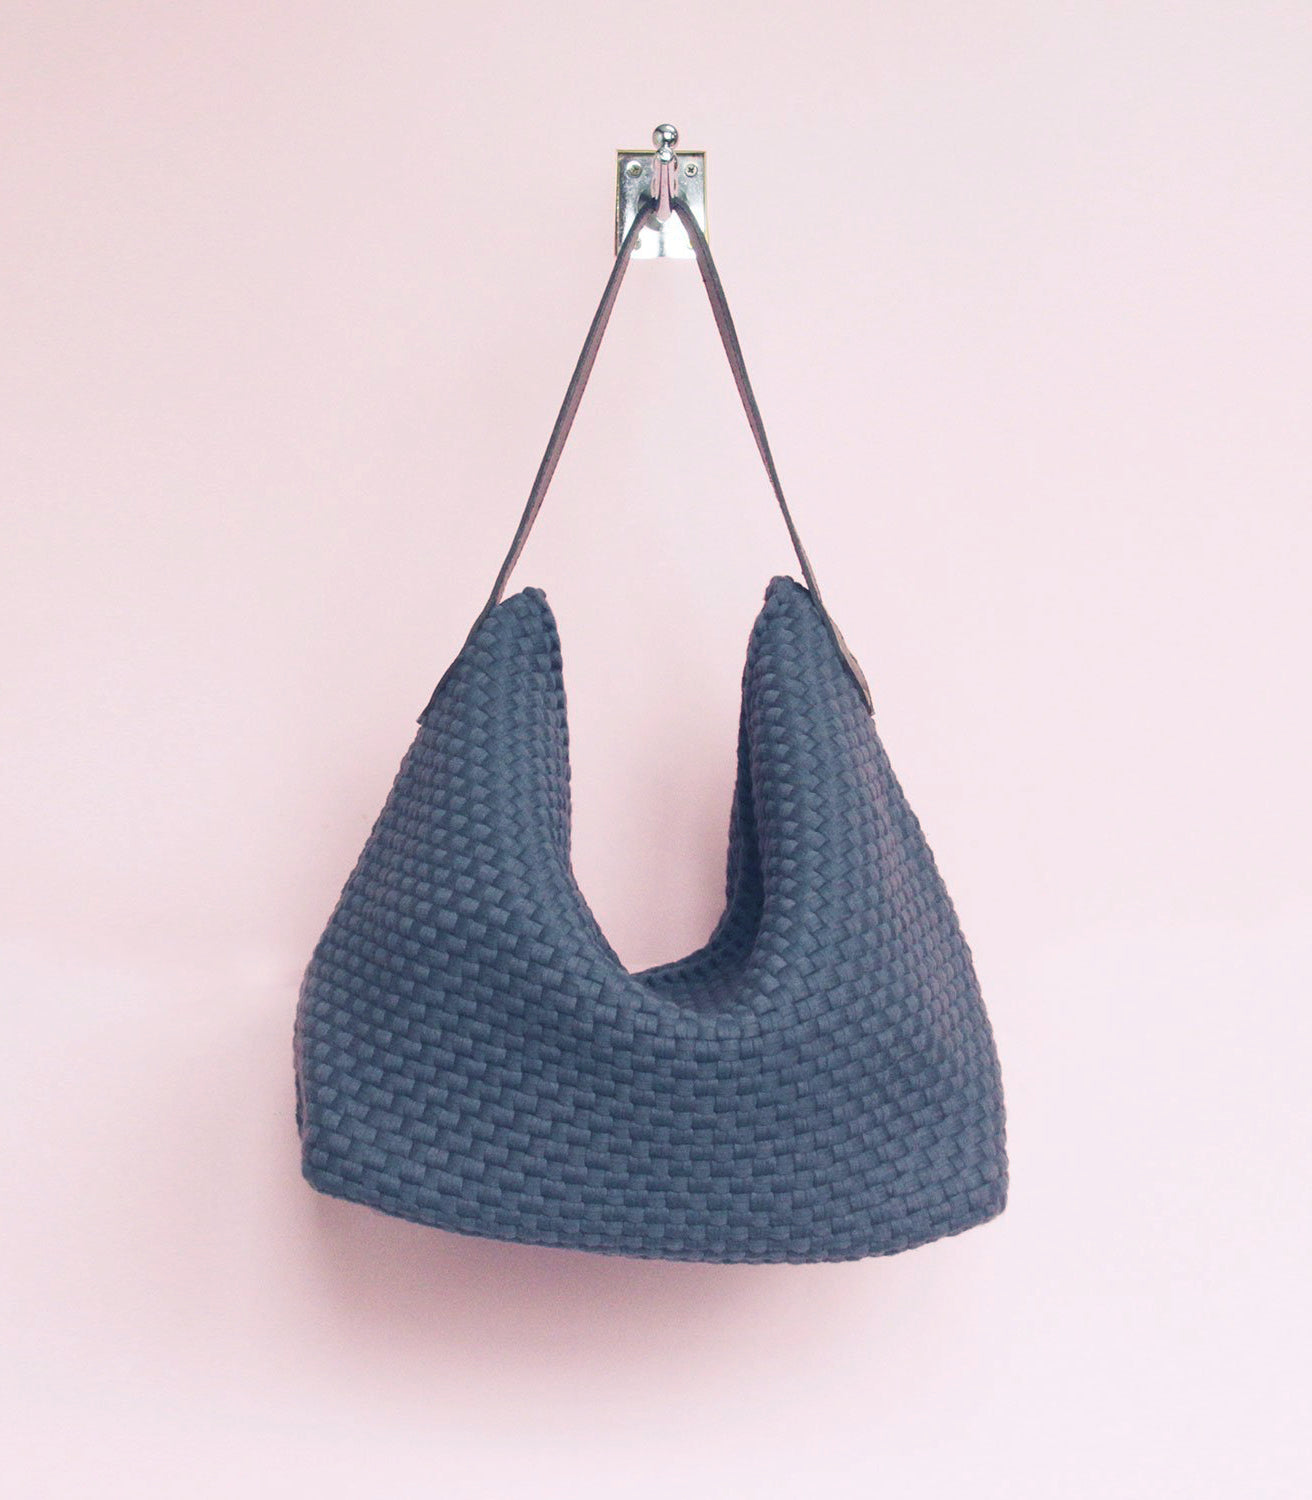 Buslo Hobo Bag in Charcoal Grey hanging on a wall - Rags2Riches